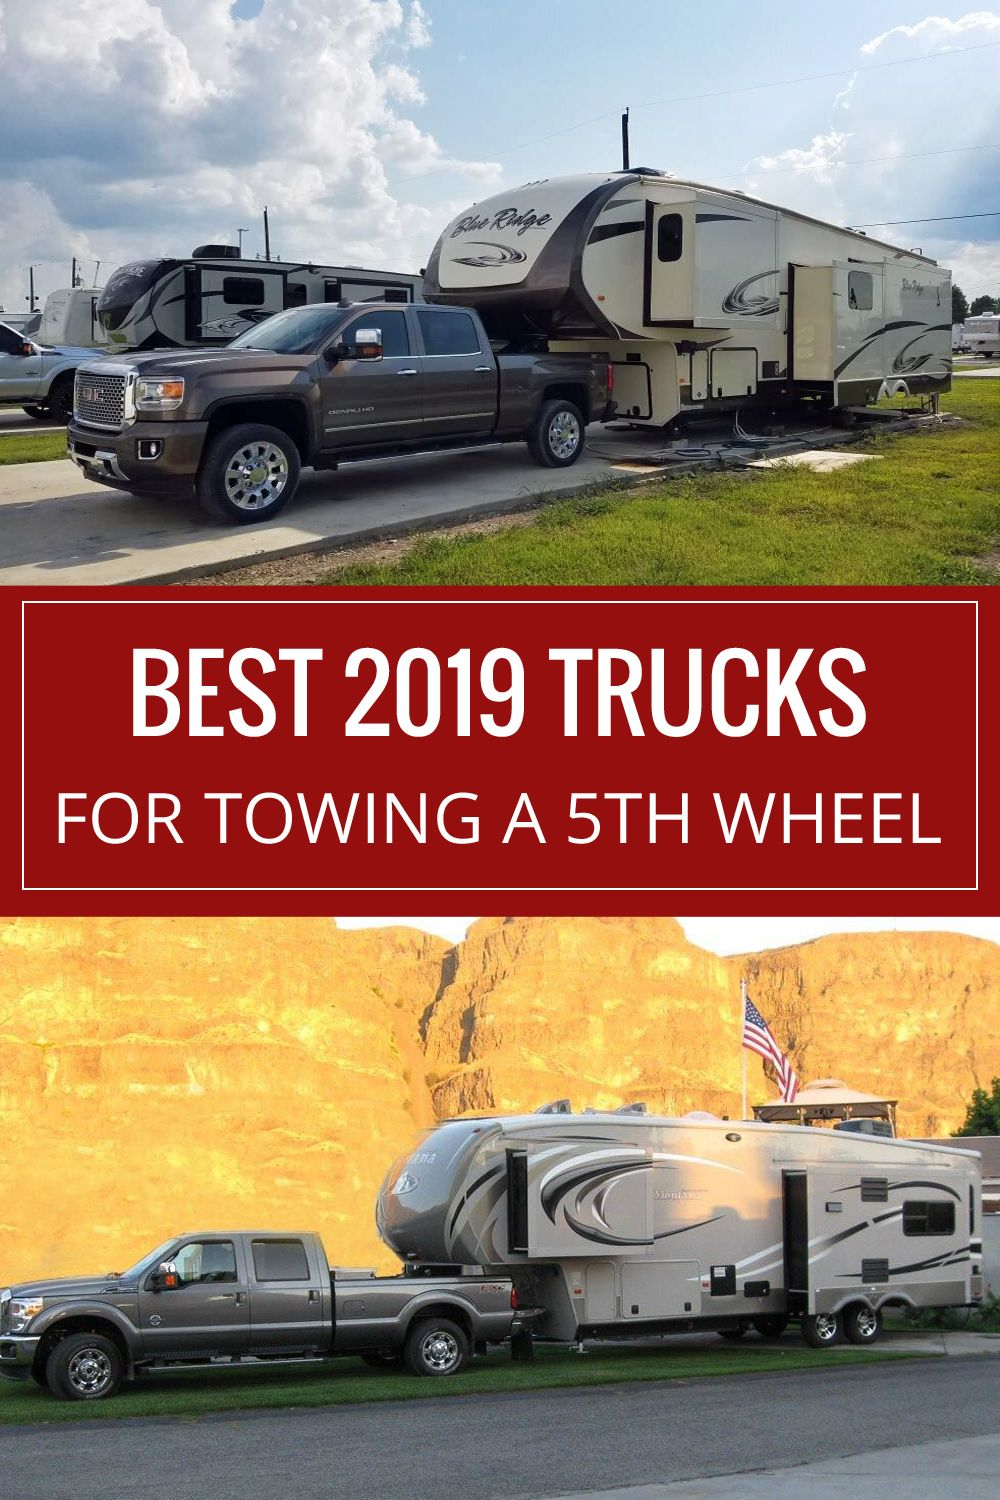 What Is The Best 2019 Pickup Truck For Towing A Fifth Wheel